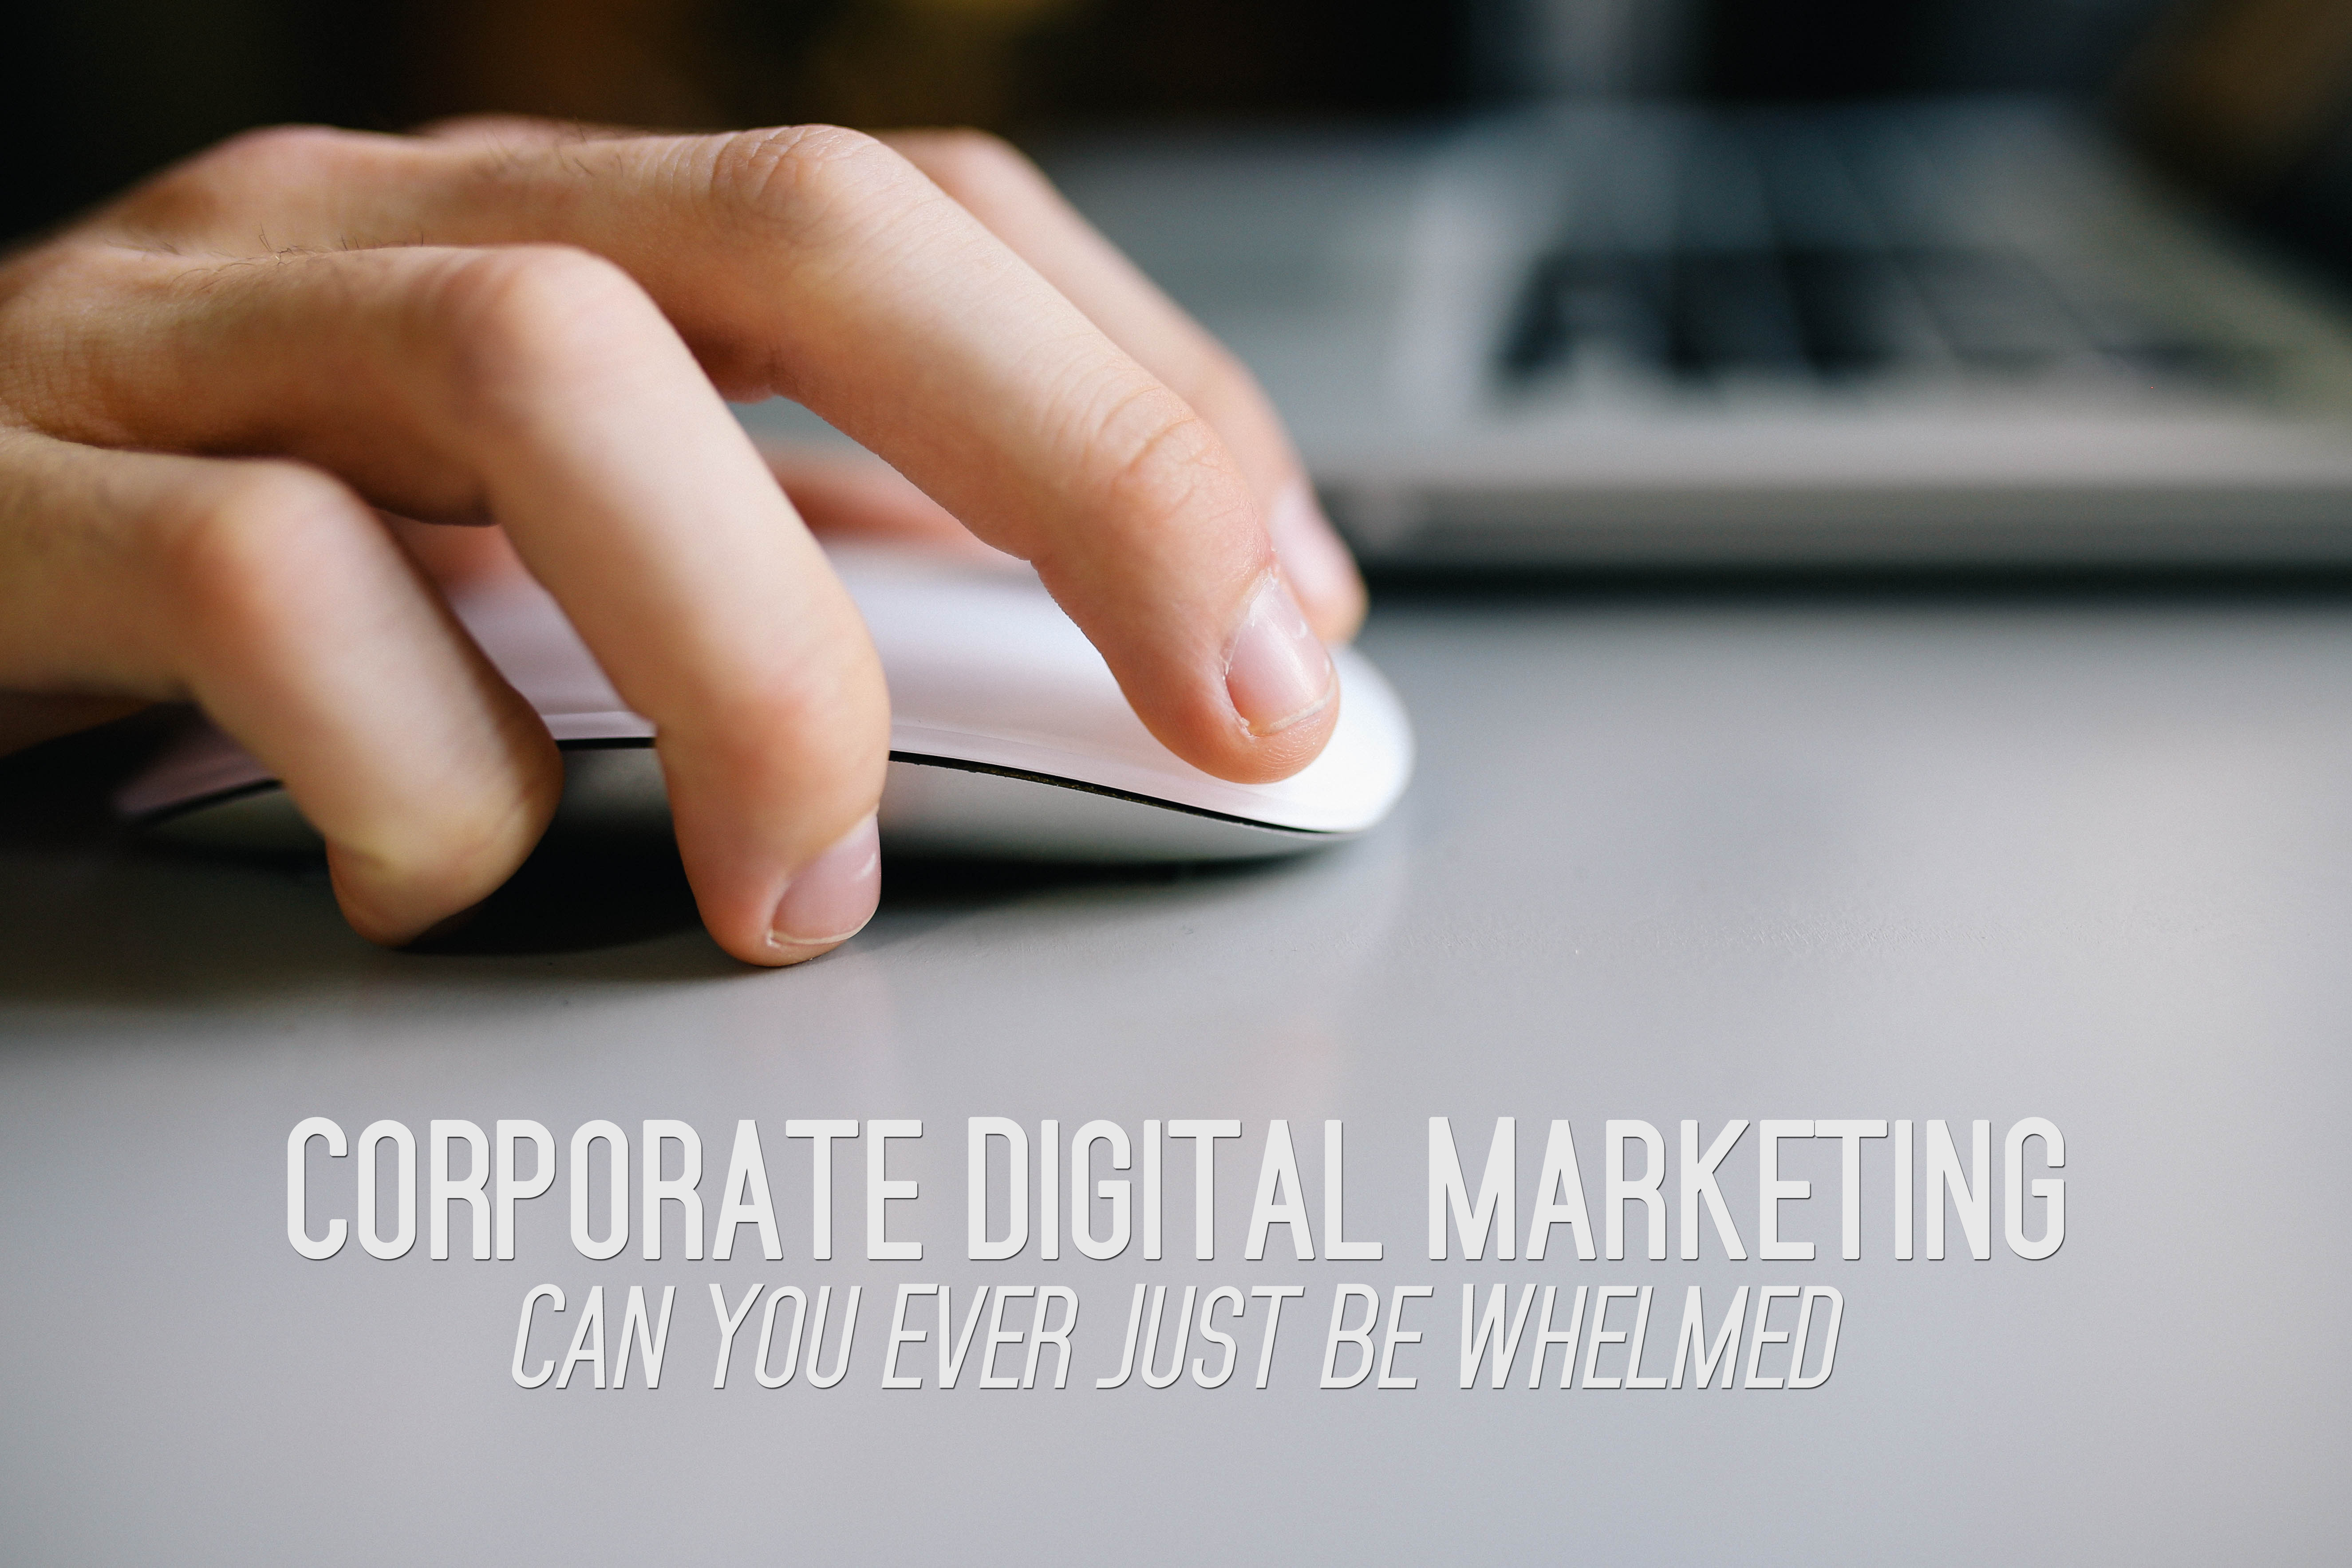 Corporate Digital Marketing: Can You Ever Just Be Whelmed?